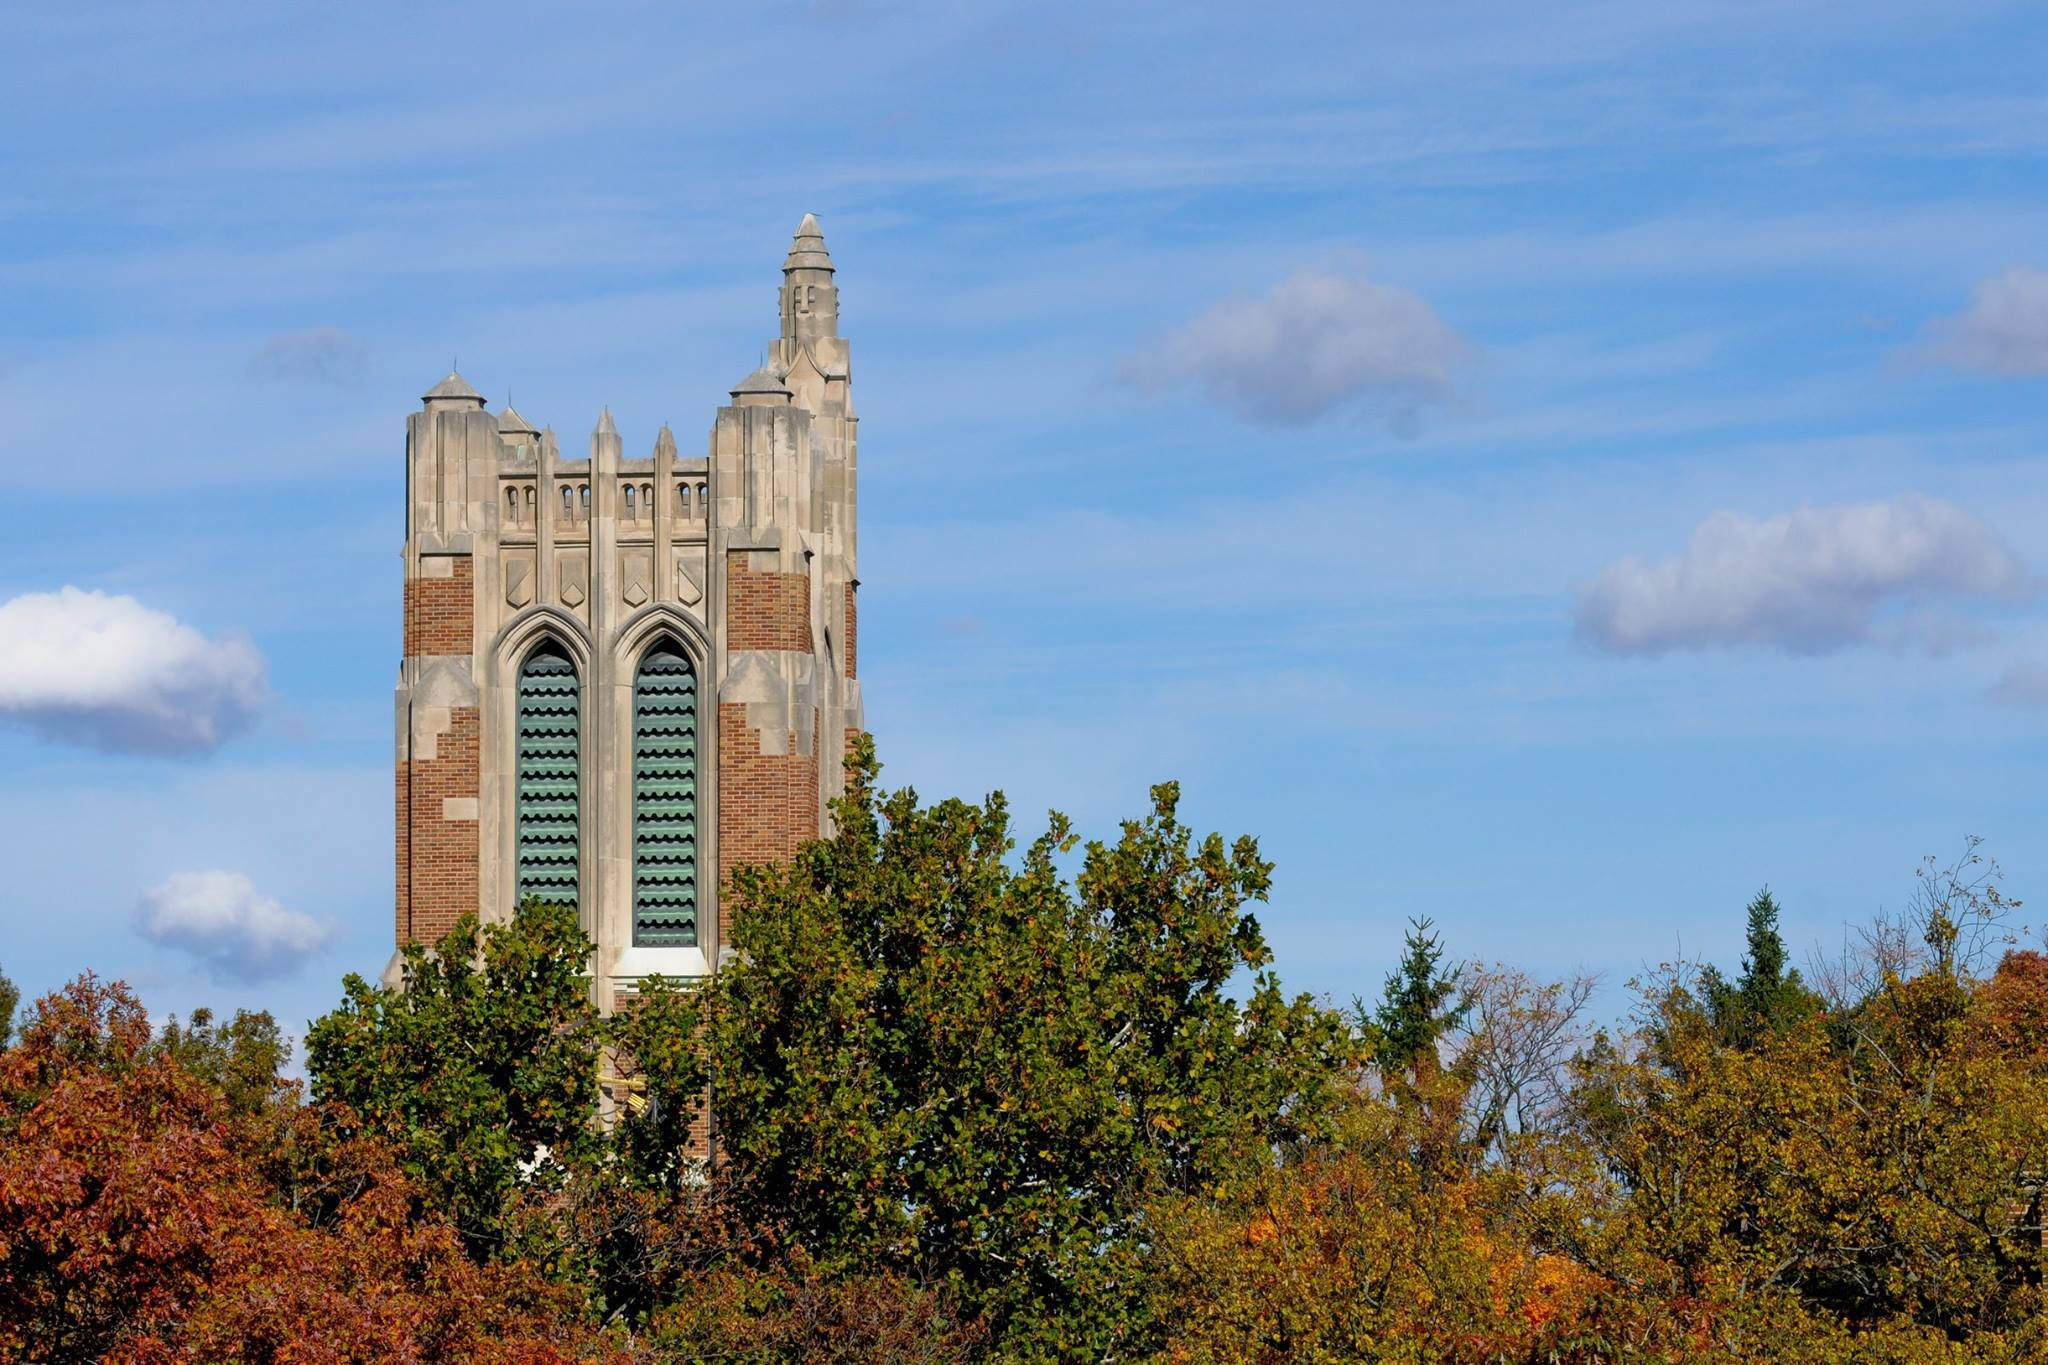 Top of the clock tower at Michigan State University